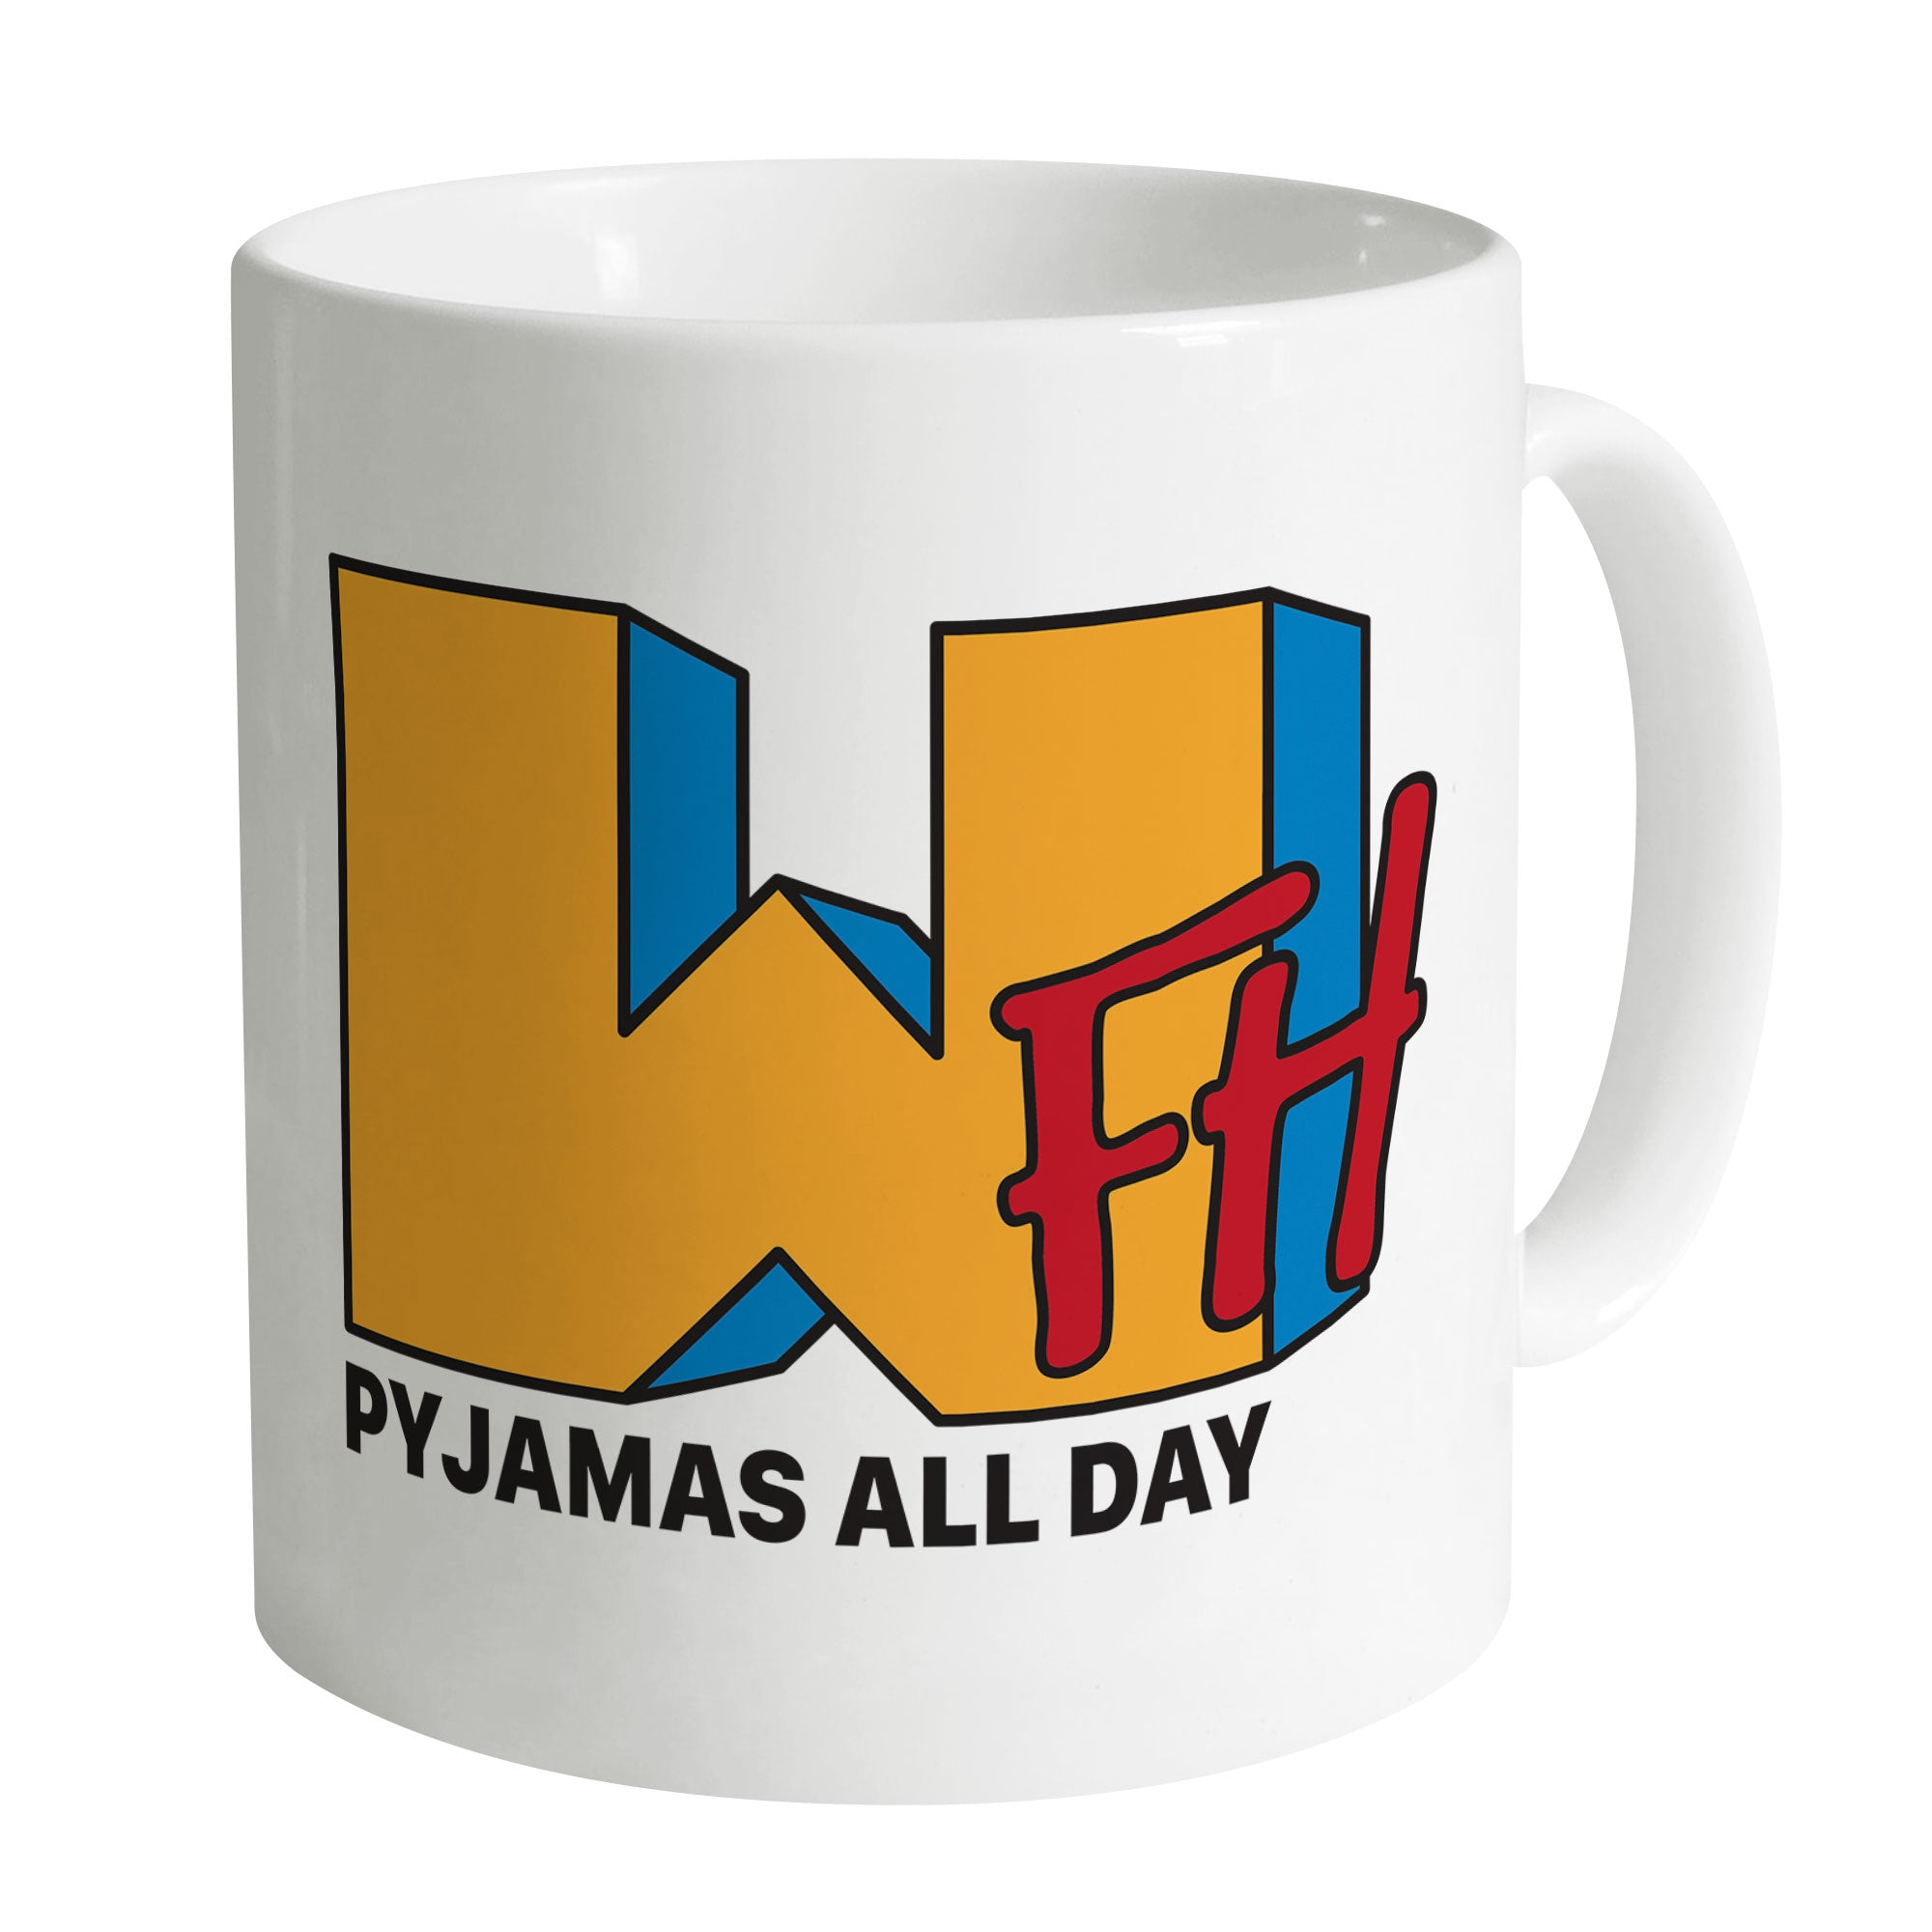 Cheap Work From Home PJs Mug Clothing & Accessories